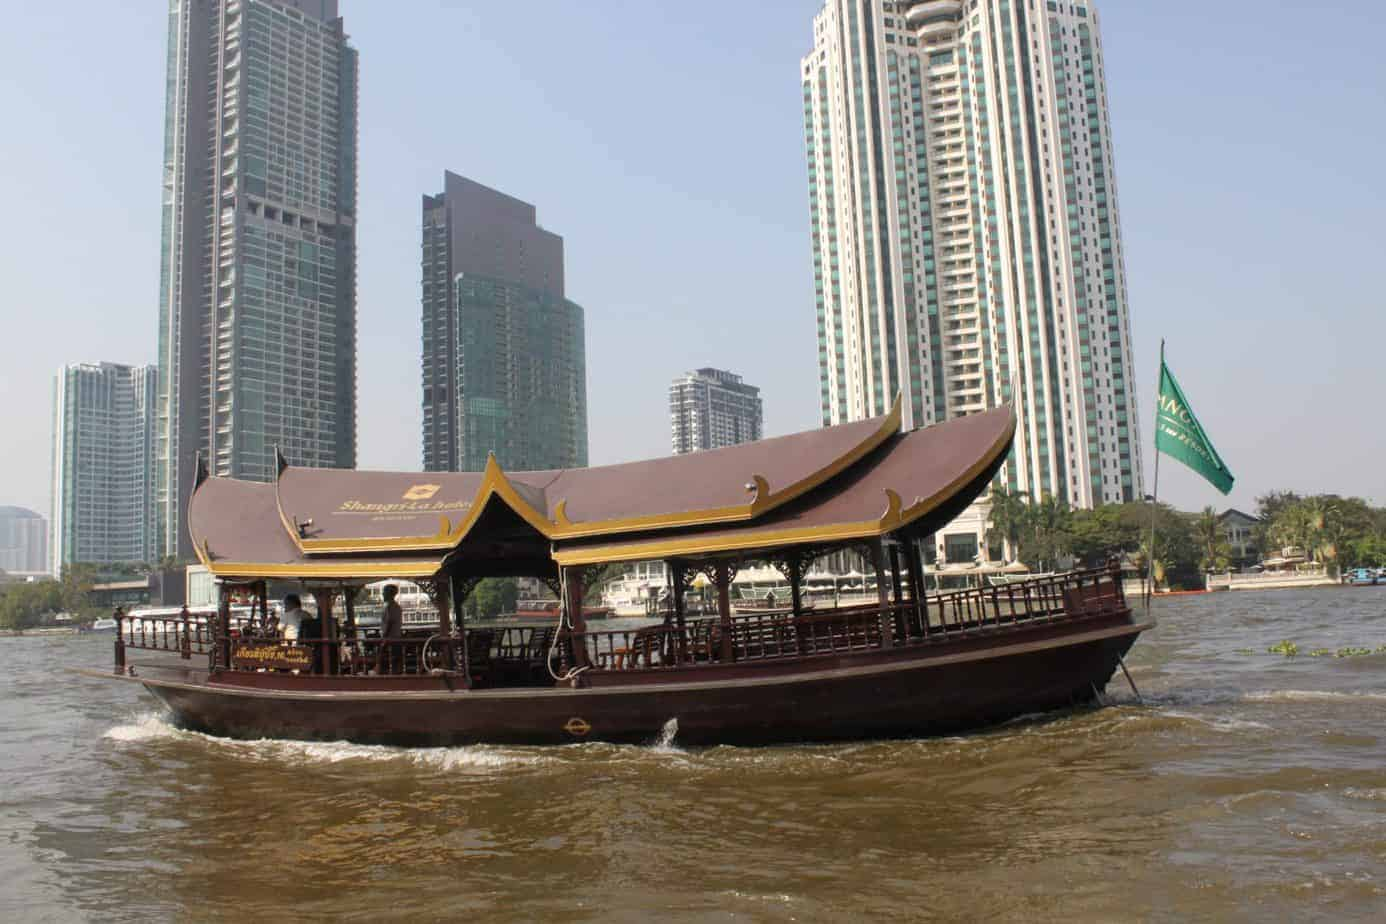 A 5-star hotel shuttle boat on the bacteriological waters.